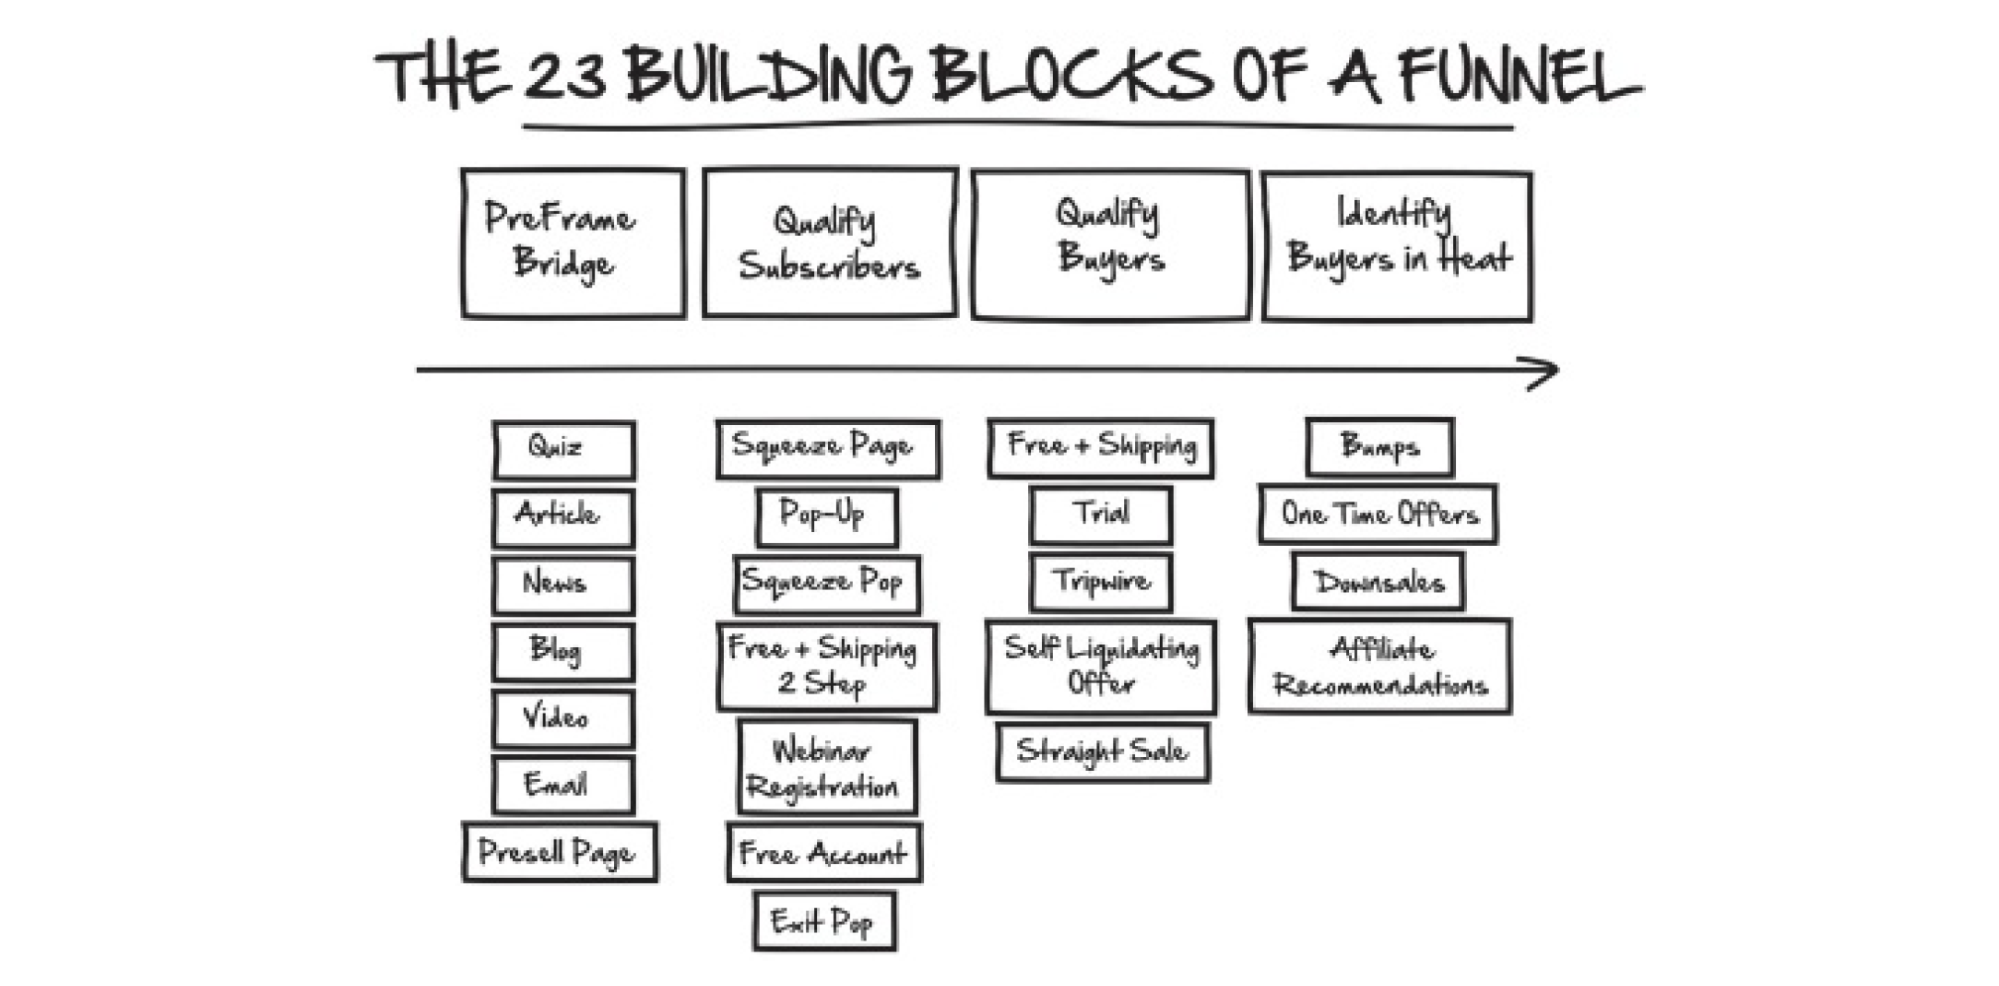 the 23 building blocks of a funnel